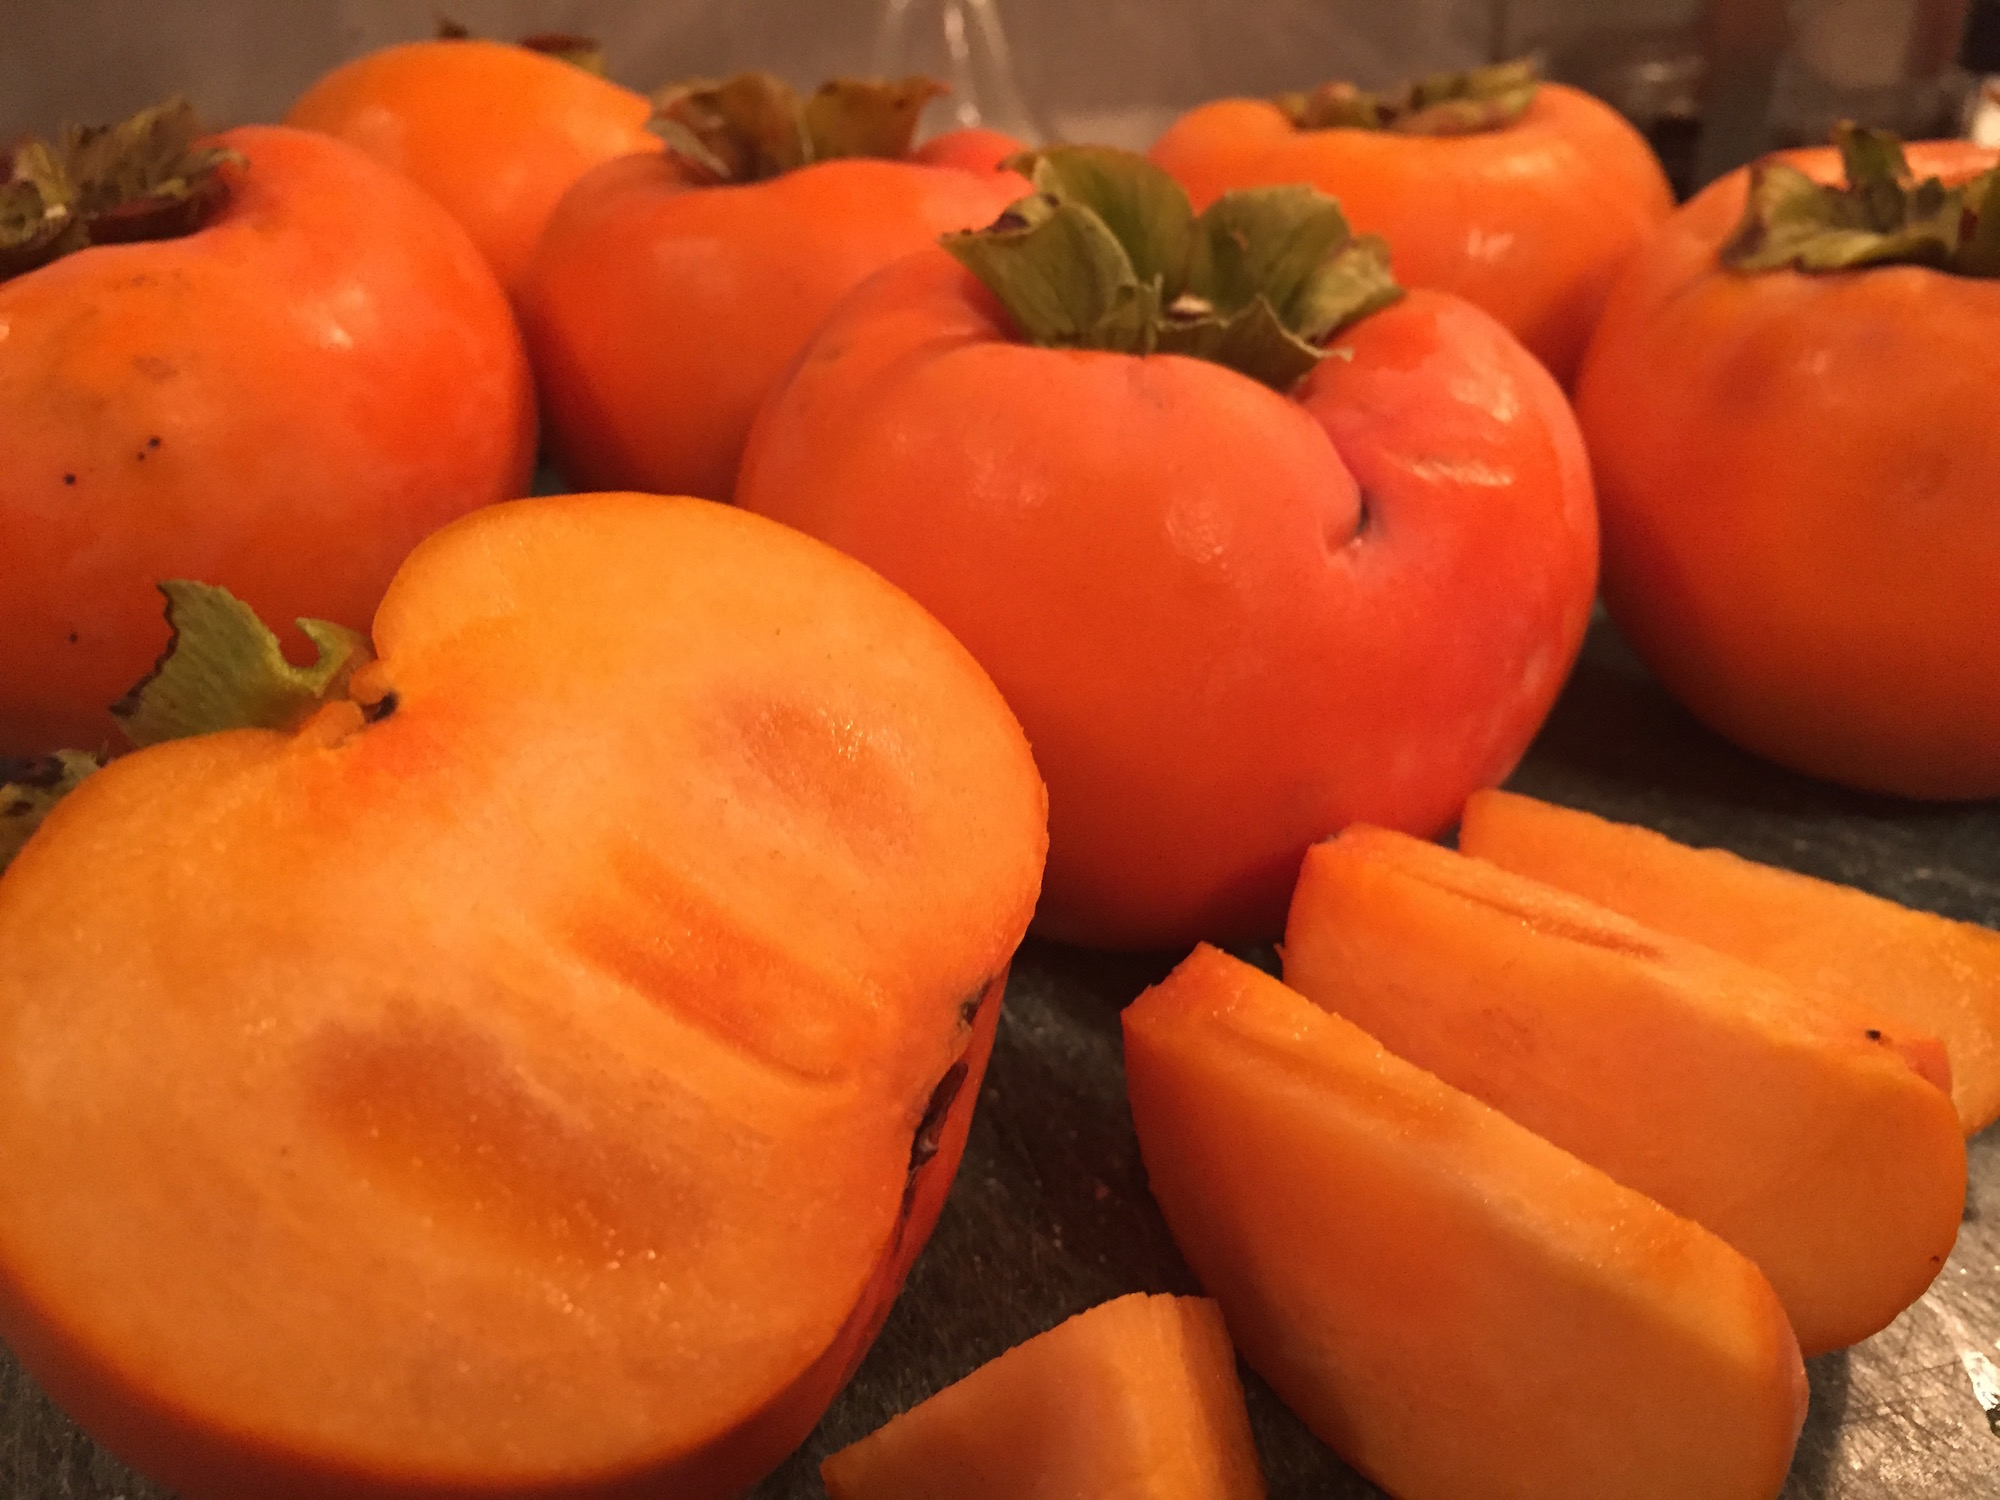 Fuyu persimmons ready to eat